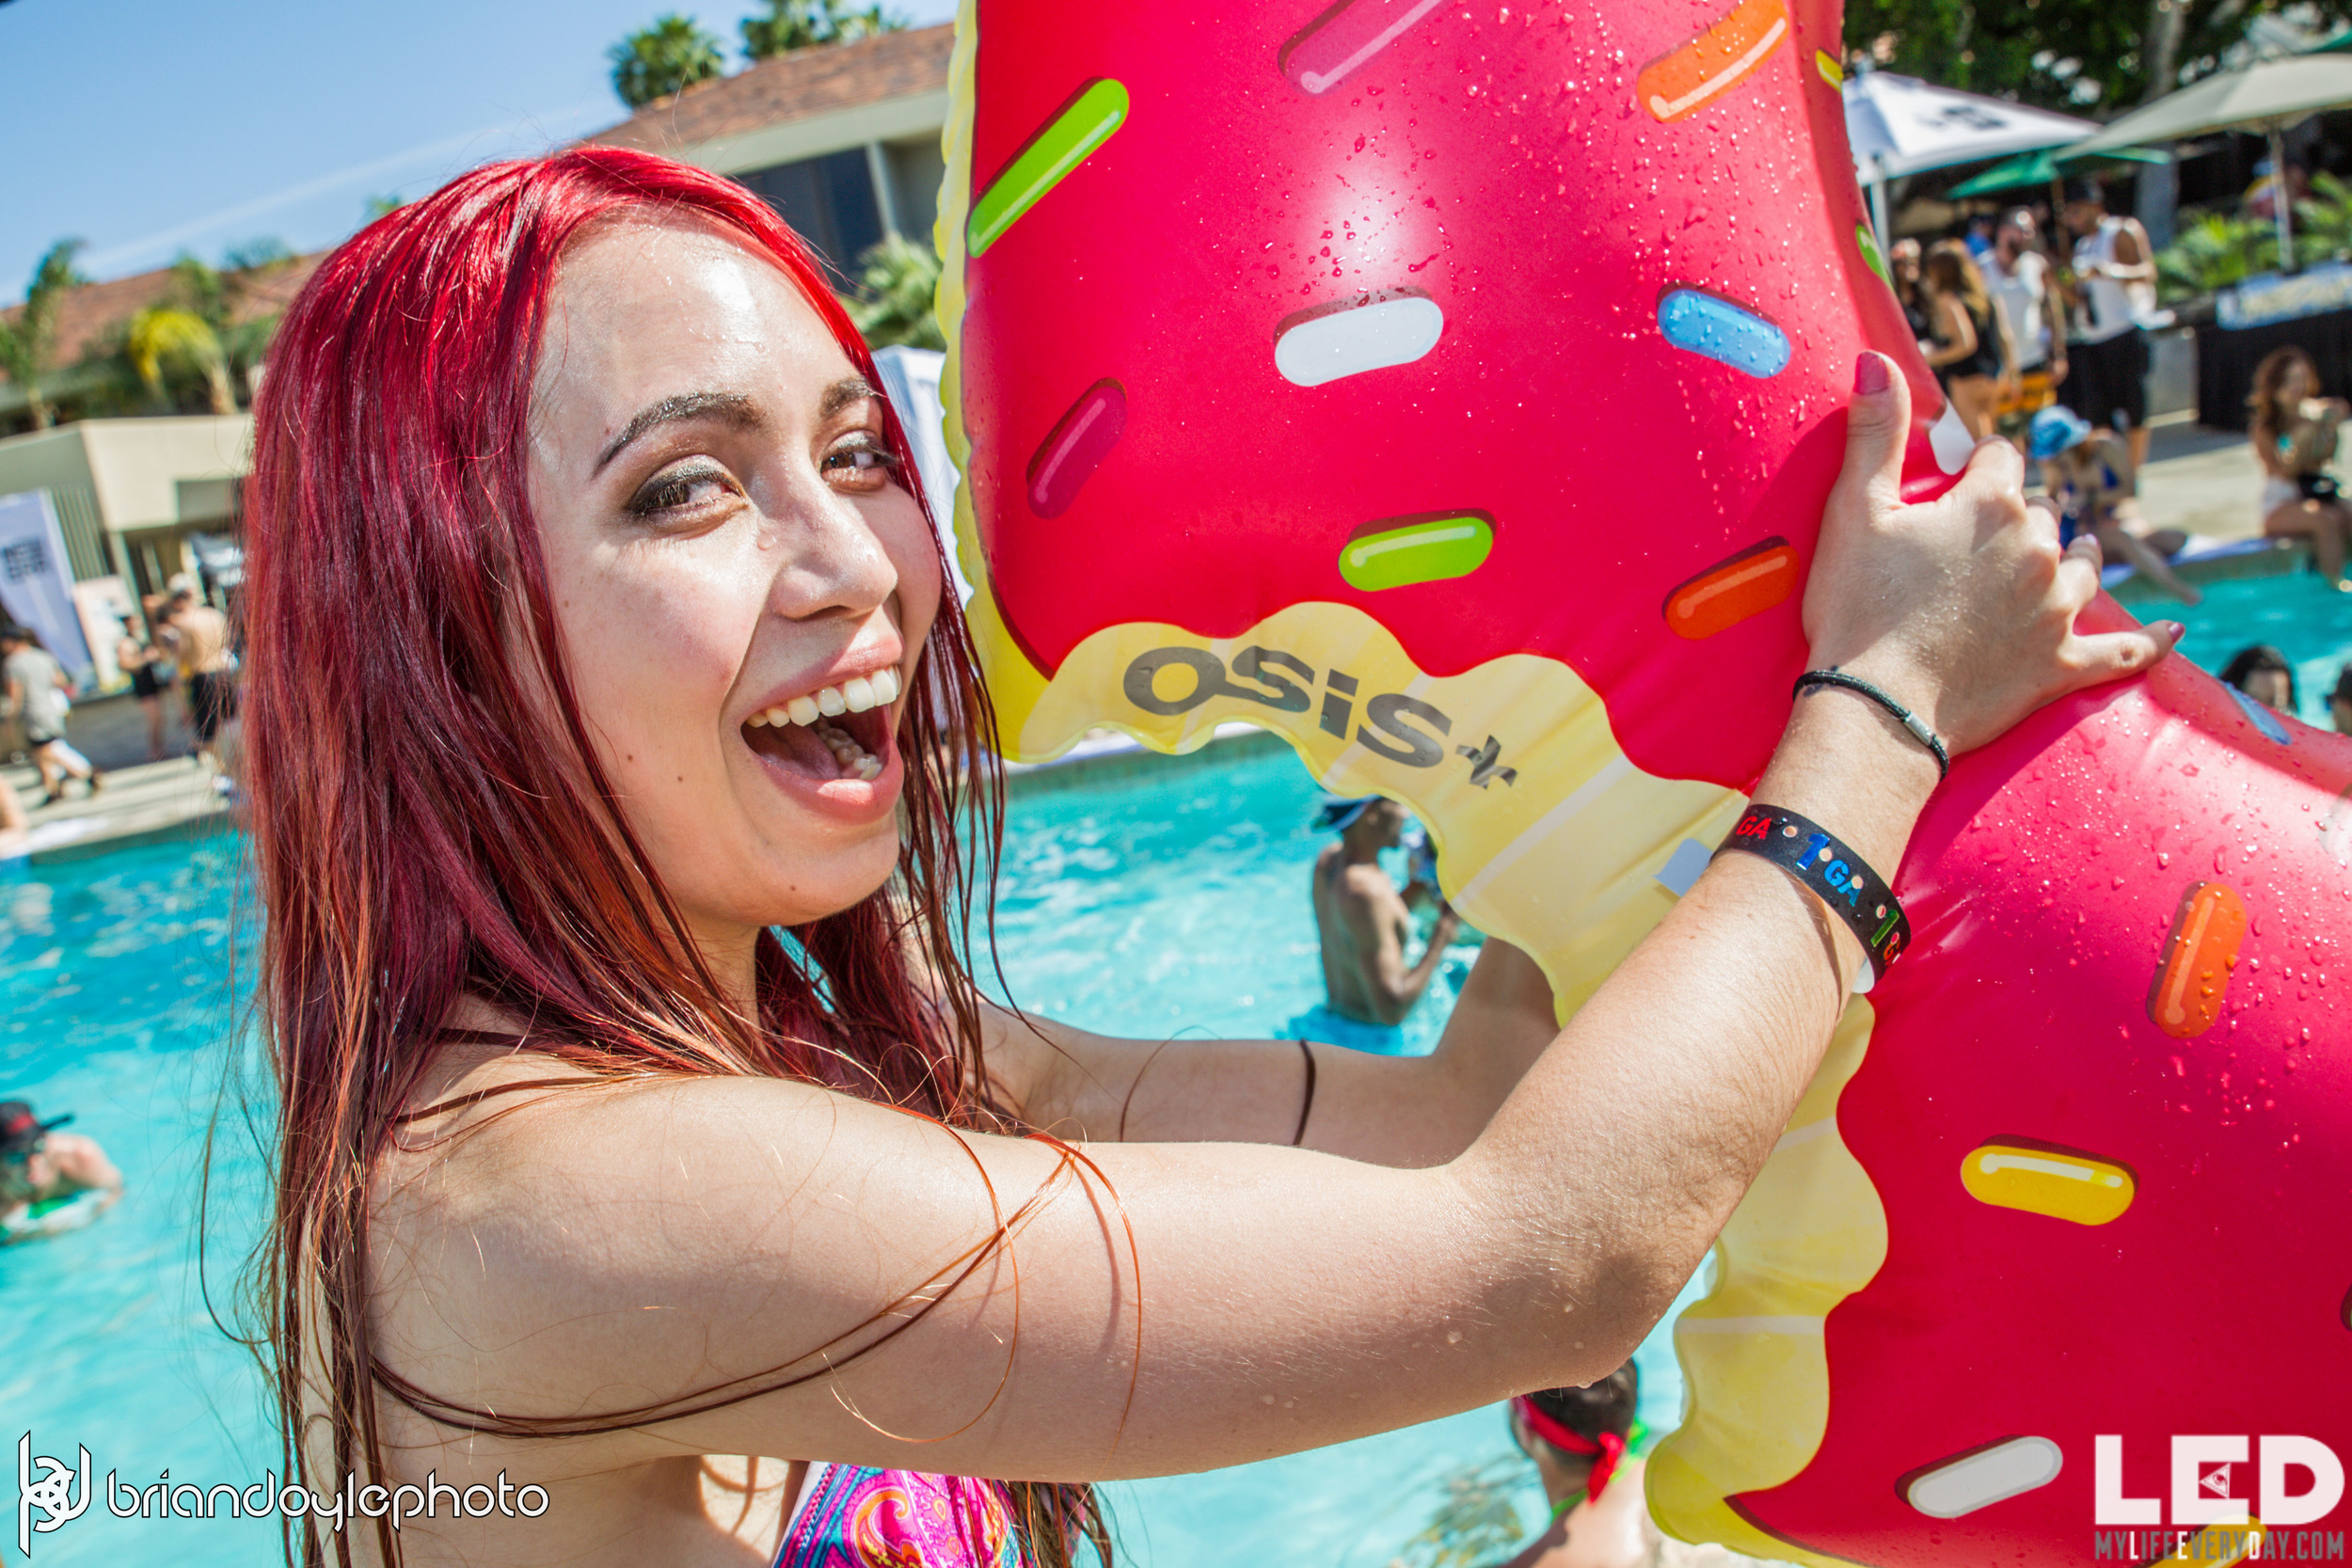 LED Day Club Day 2  Deorro and Chris 04.10.2015-31.jpg